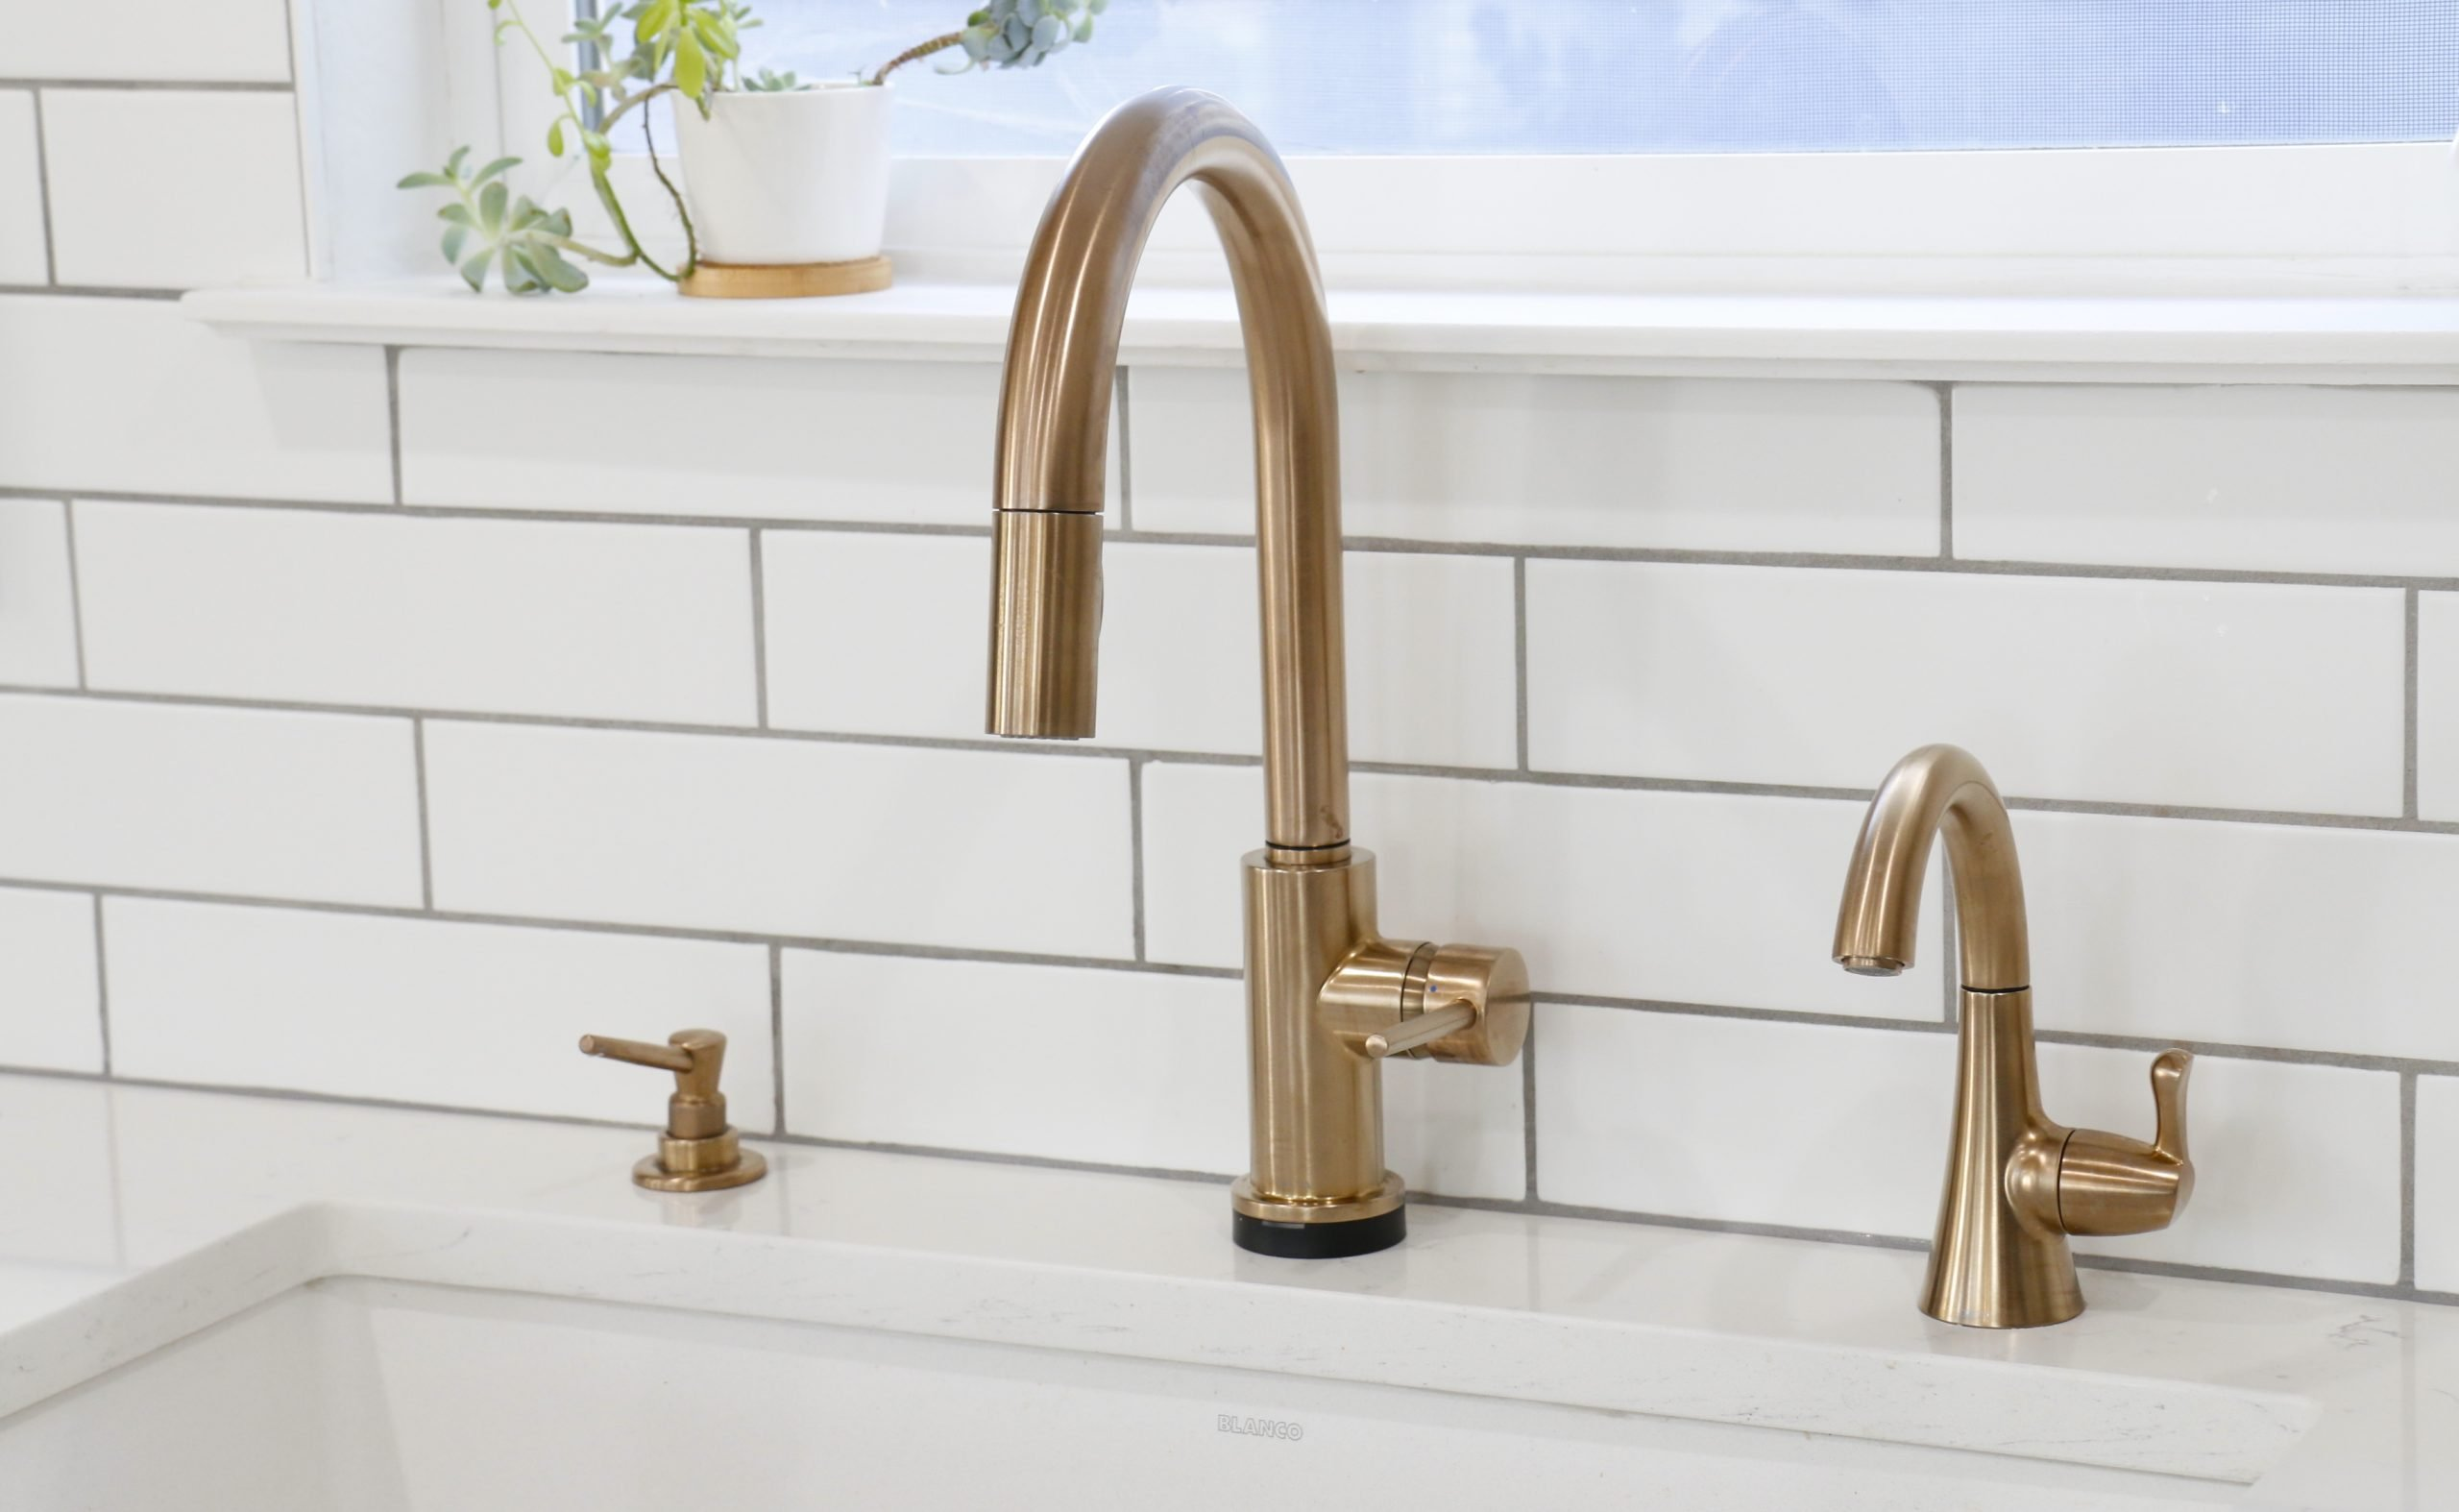 Why We Picked Delta S Trinsic Touch20 Kitchen Faucet Unmatching Delta Bar Faucet Review Misty Kingma